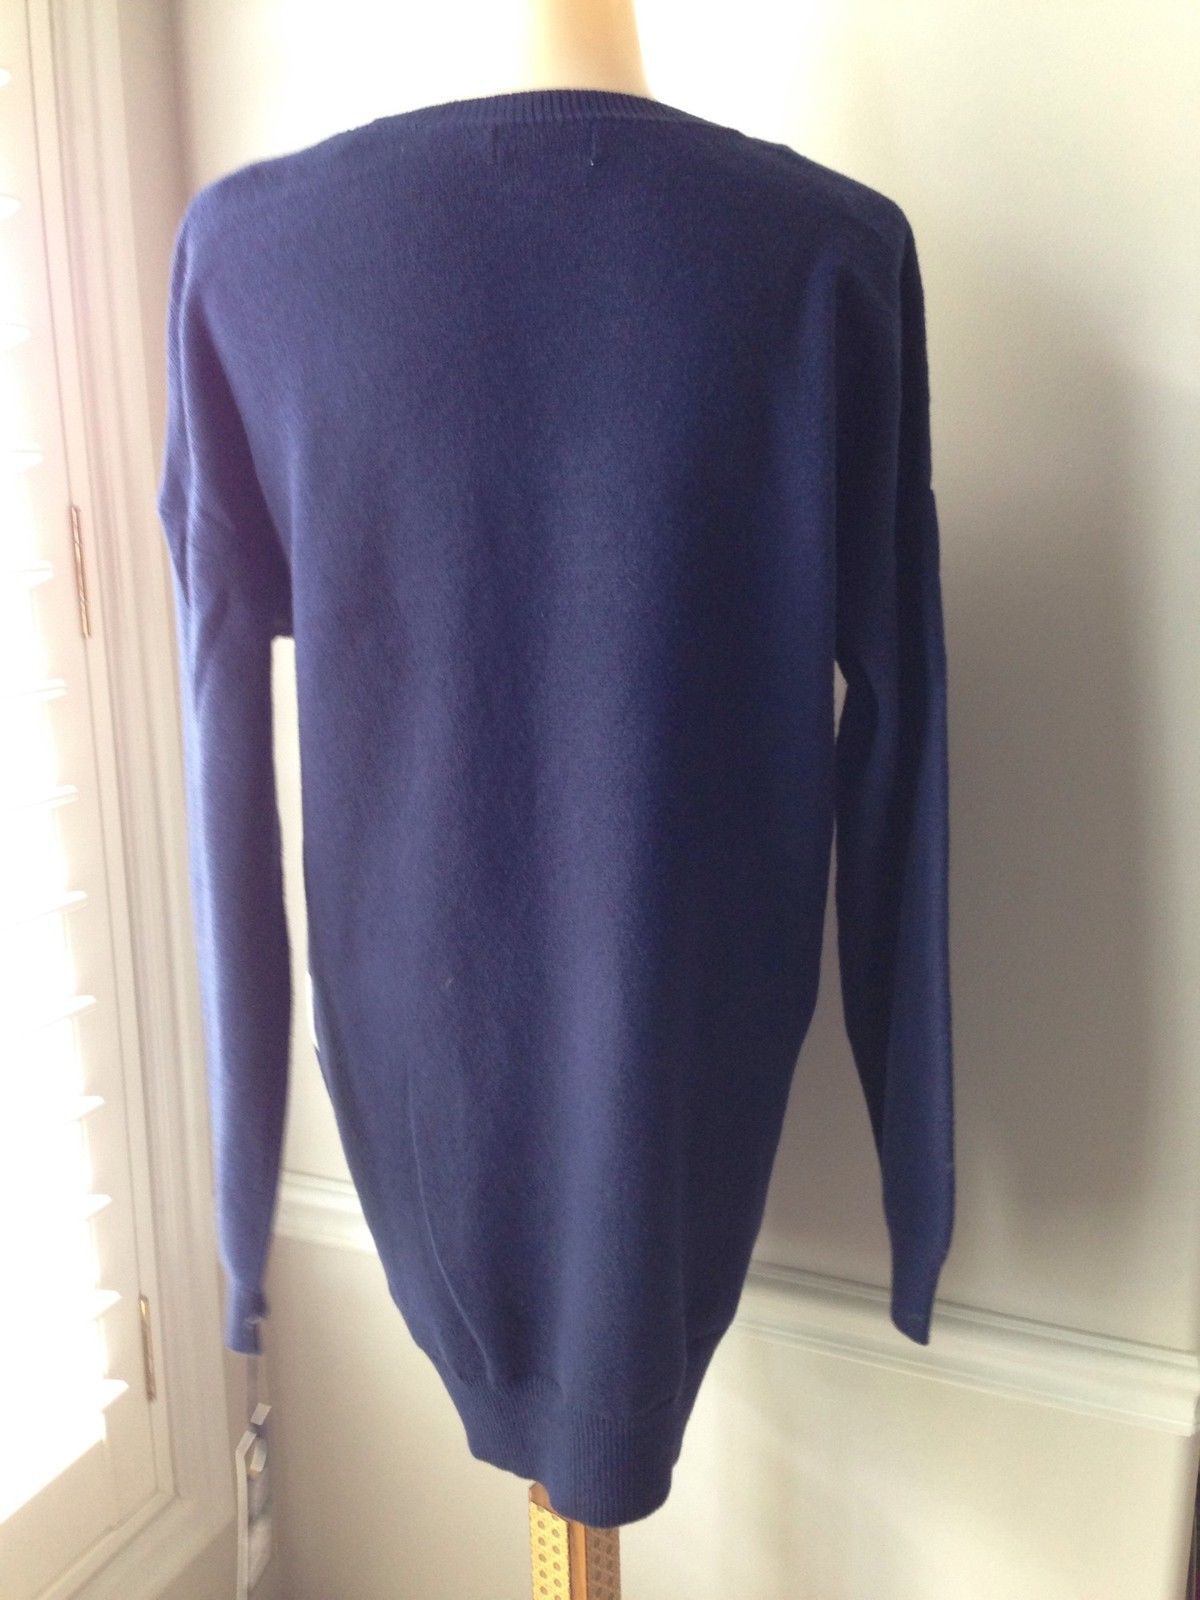 3.1 Phillip Lim for Target® Sweater/ TUNIC - NO SKIRT-Boom Print - NWT LARGE